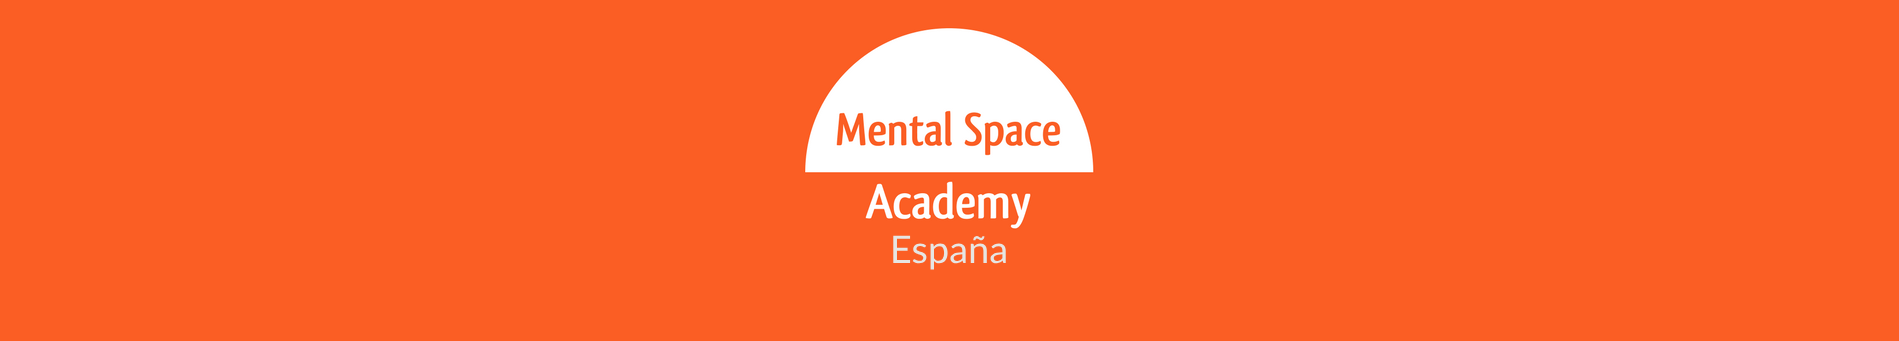 Mental Space Academy España